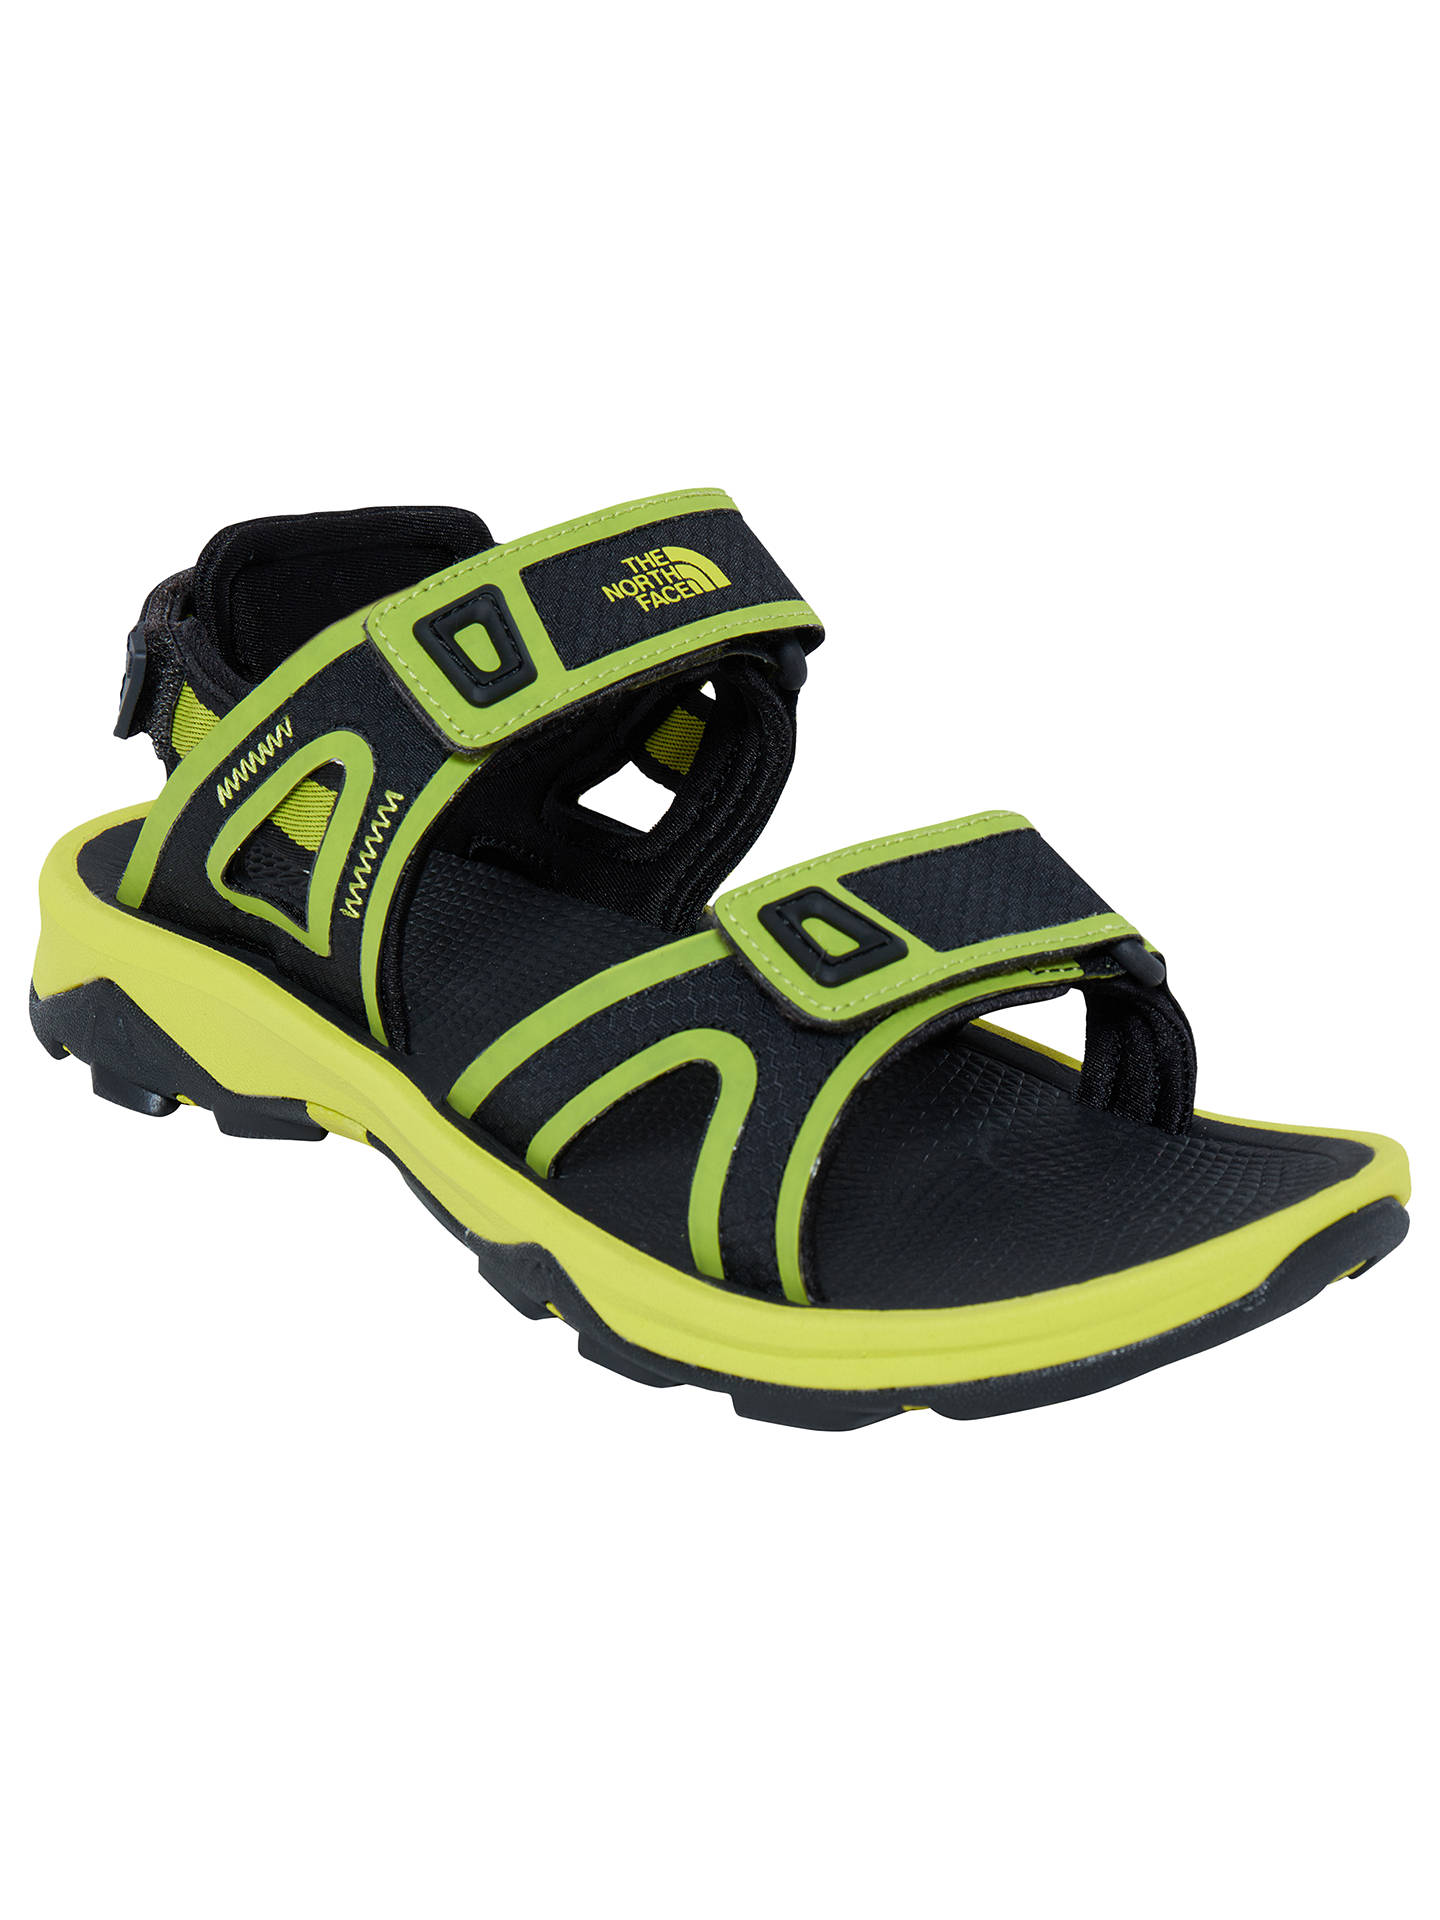 a189c3b5f The North Face Hedgehog II Men's Sandals, Green at John Lewis & Partners